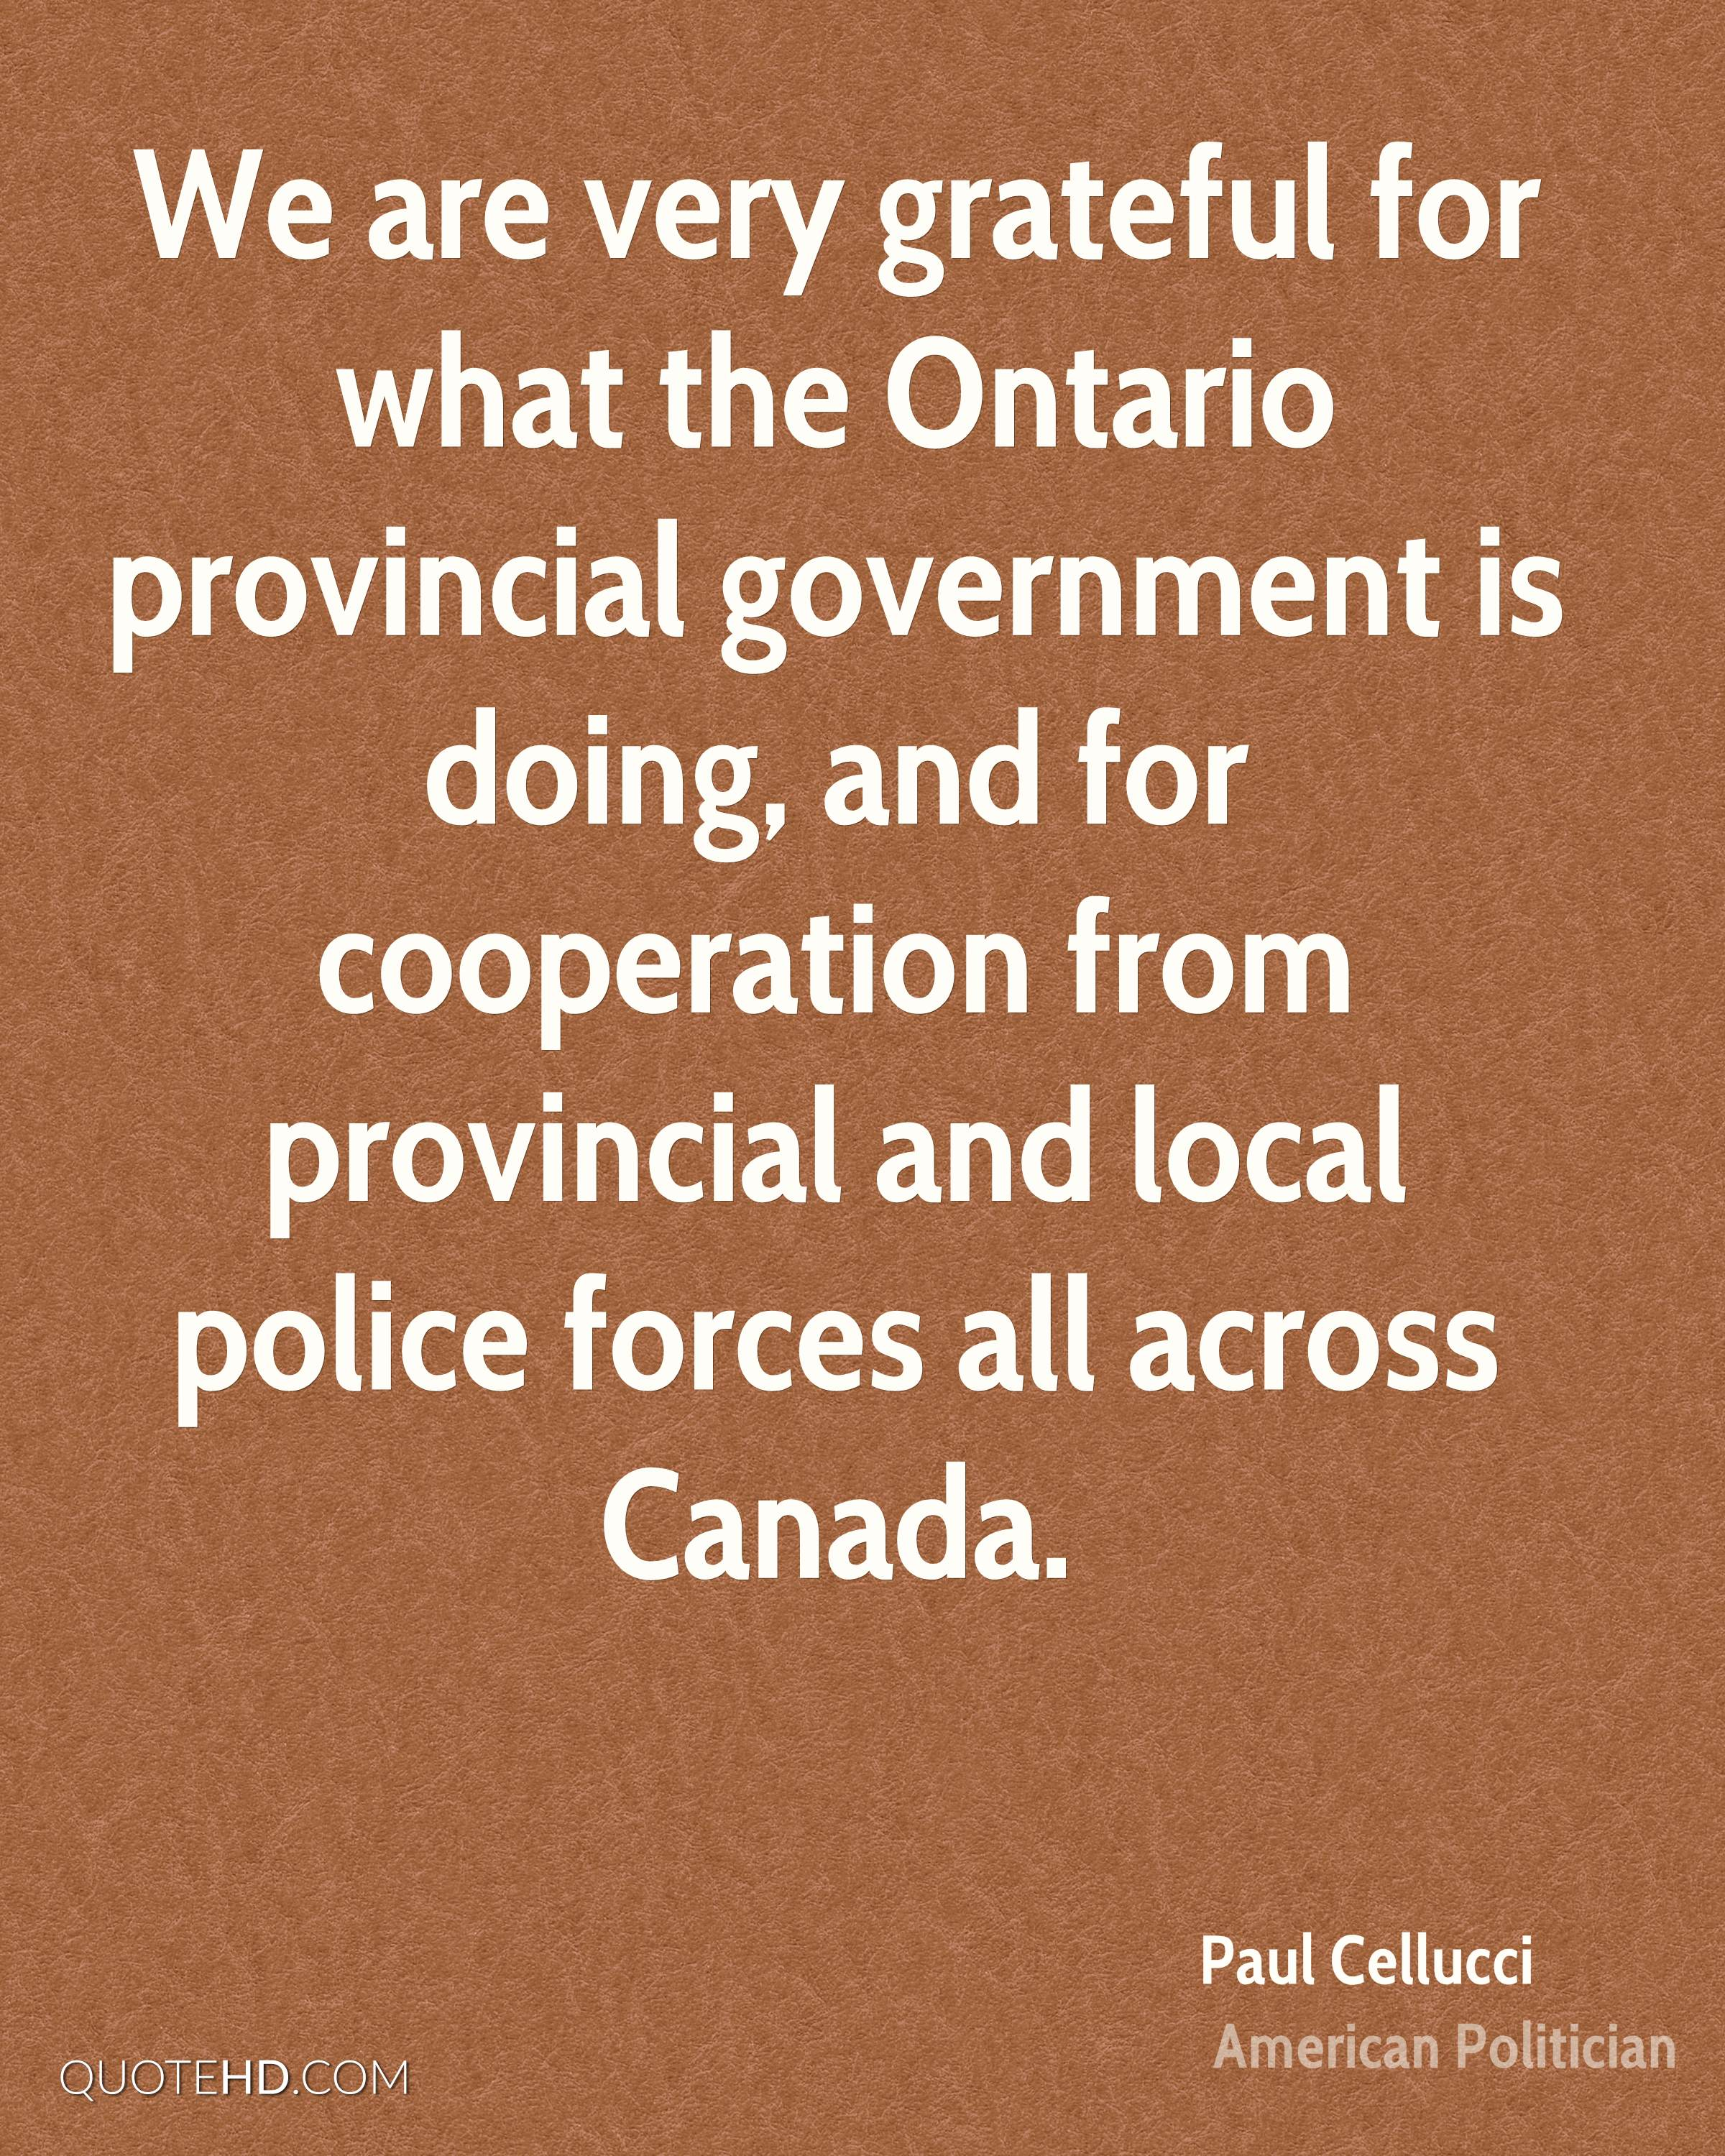 We are very grateful for what the Ontario provincial government is doing, and for cooperation from provincial and local police forces all across Canada.